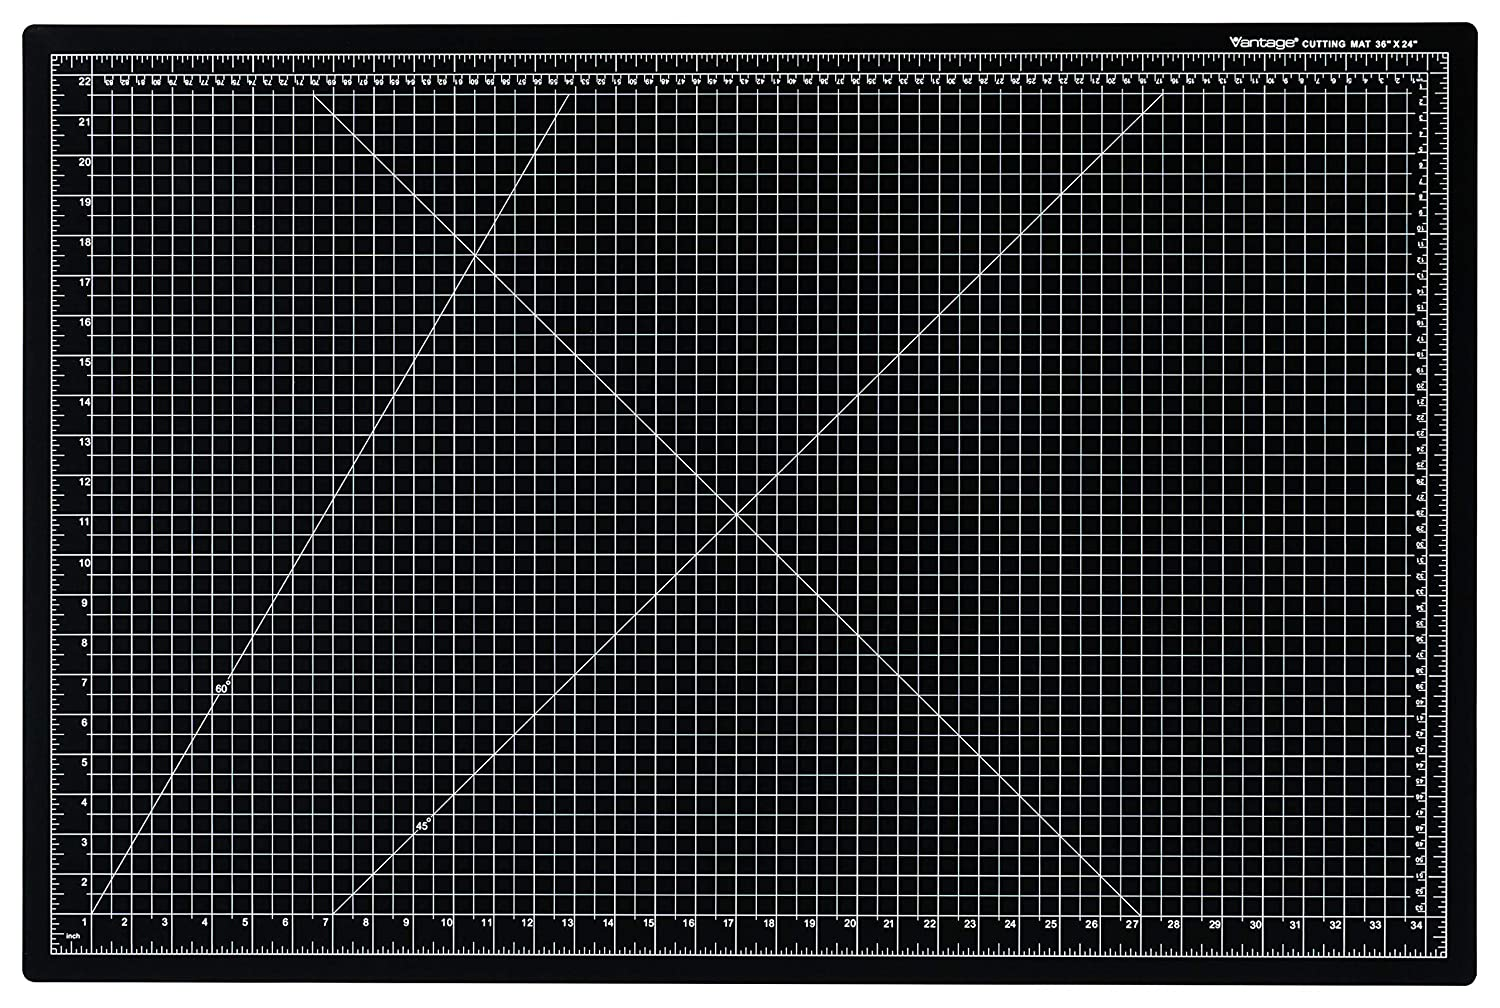 "Dahle Vantage 10673 Self-Healing 5-Layer Cutting Mat Perfect for Crafts and Sewing 24"" x 36"" Black Mat"